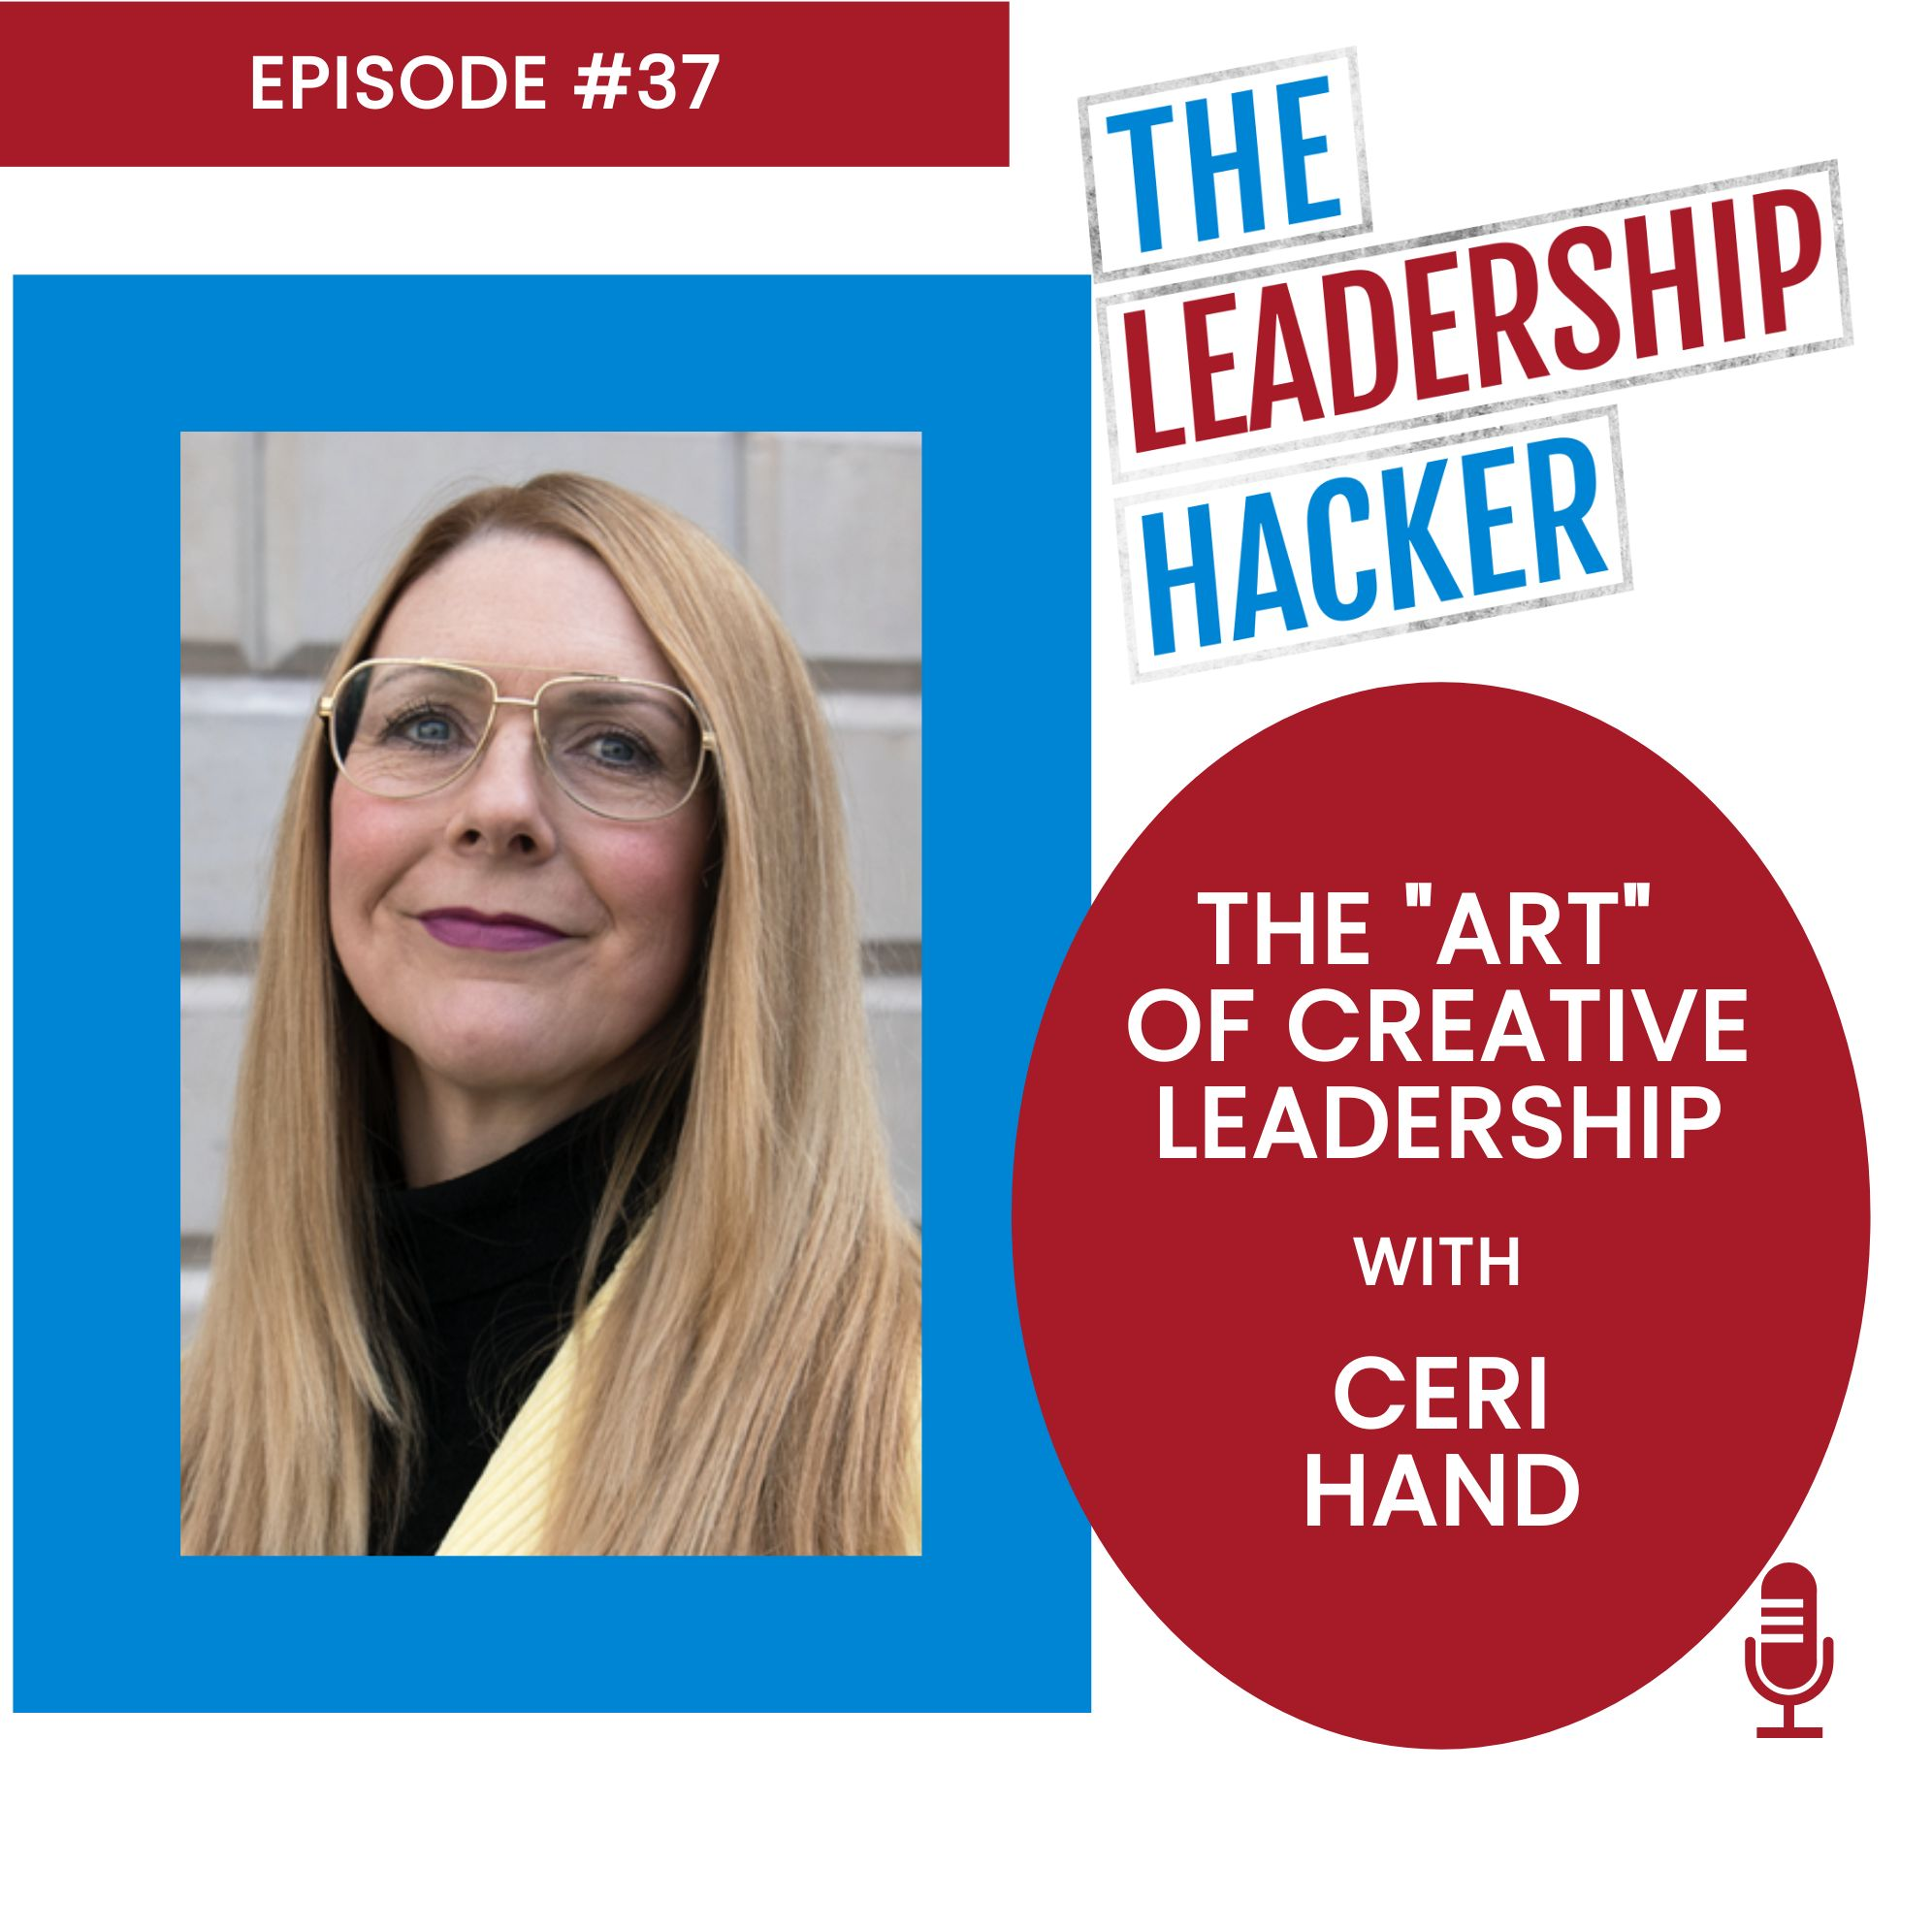 The Art of Creative Leadership with Ceri Hand